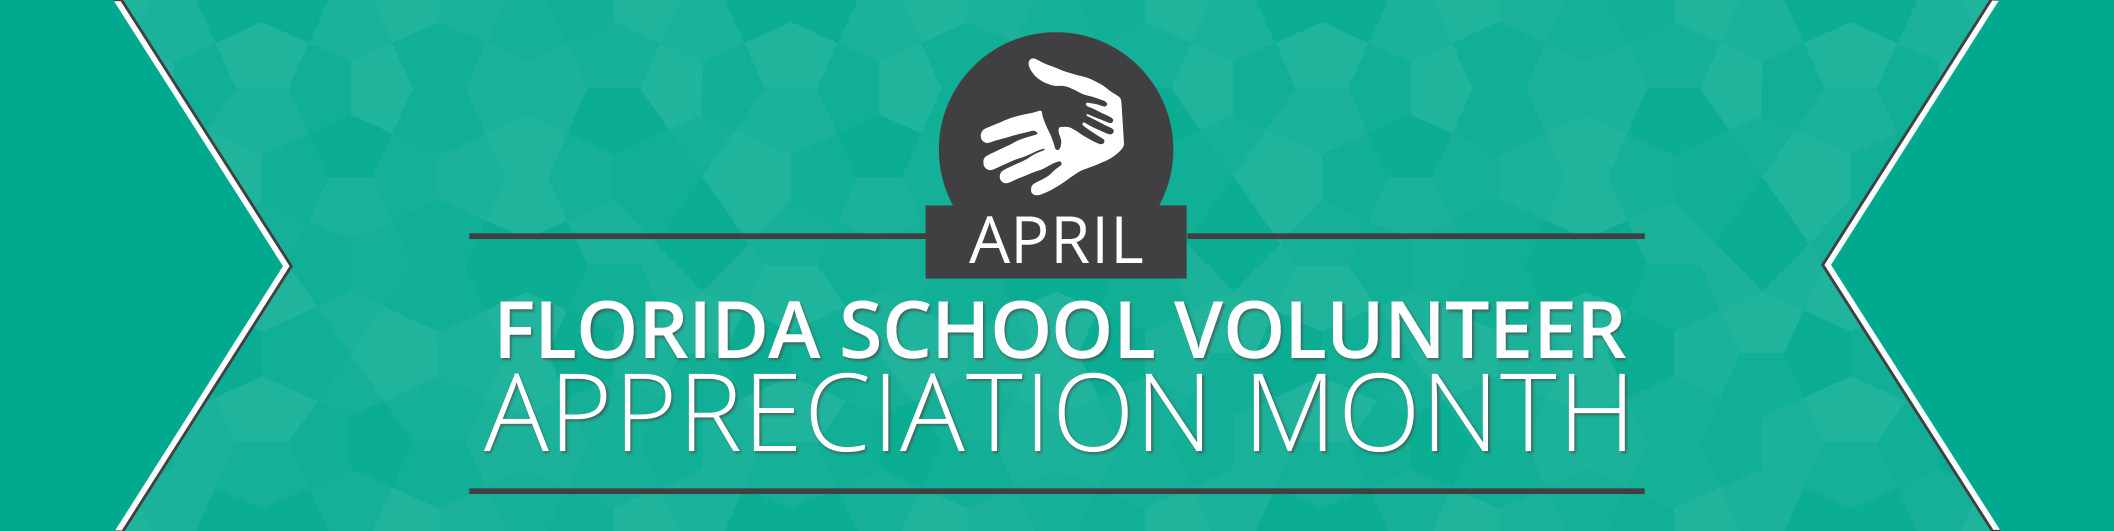 Florida School Volunteer Appreciation Month